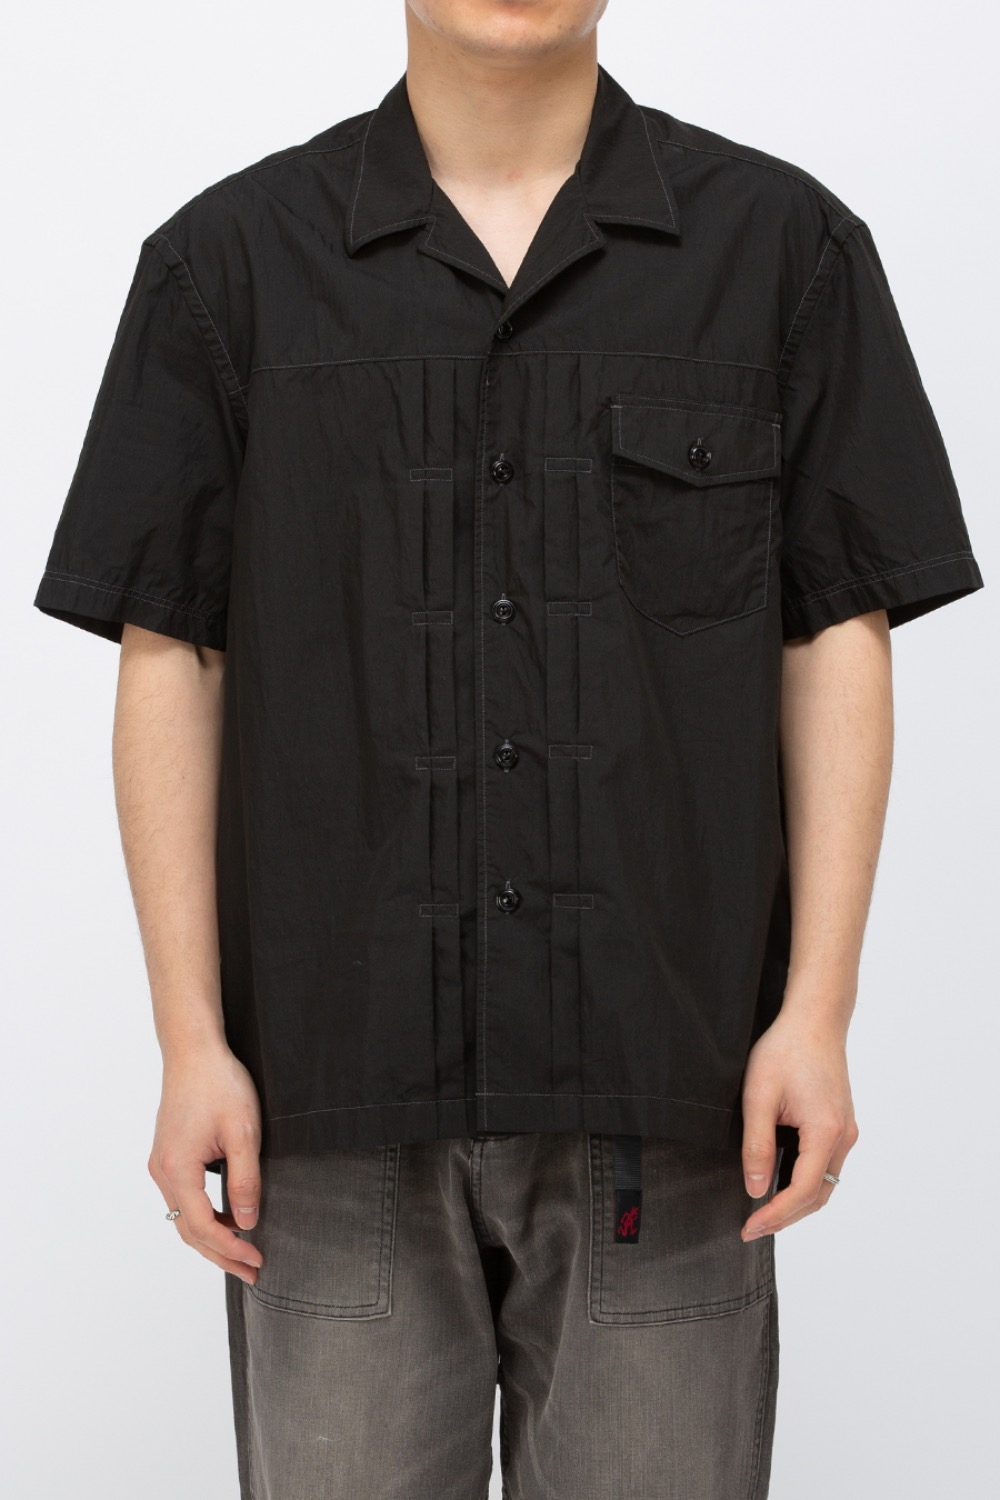 TRUCKER HALF SHIRT BLACK